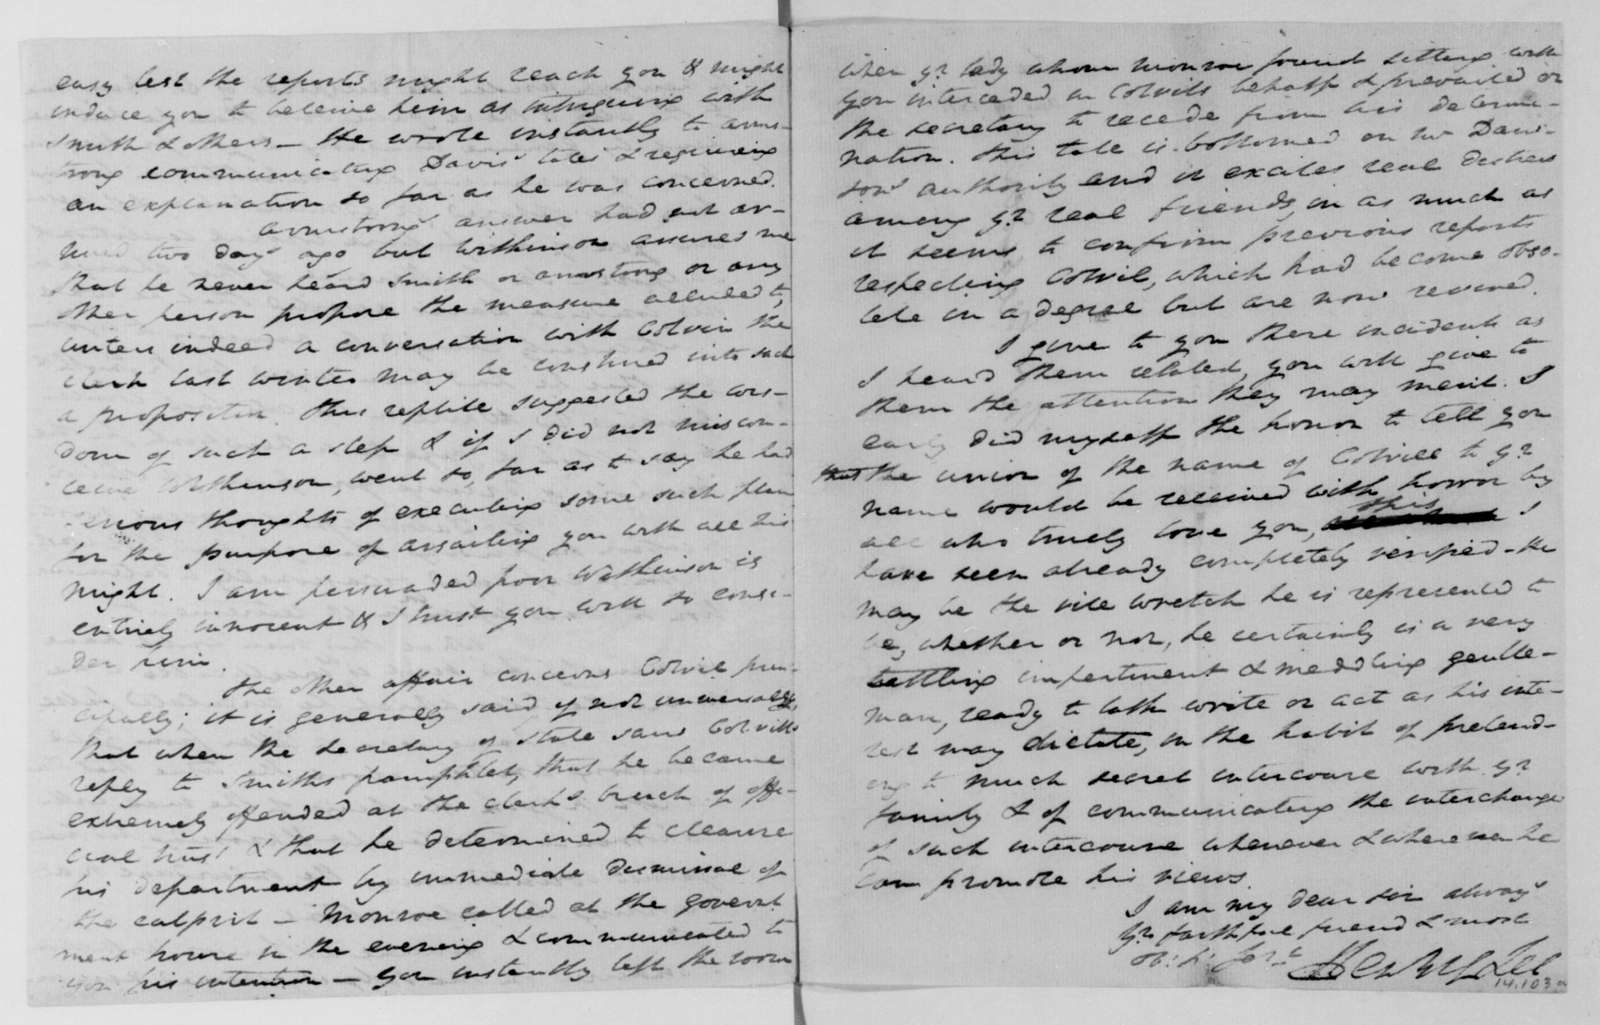 Henry Lee to James Madison, August 19, 1811.